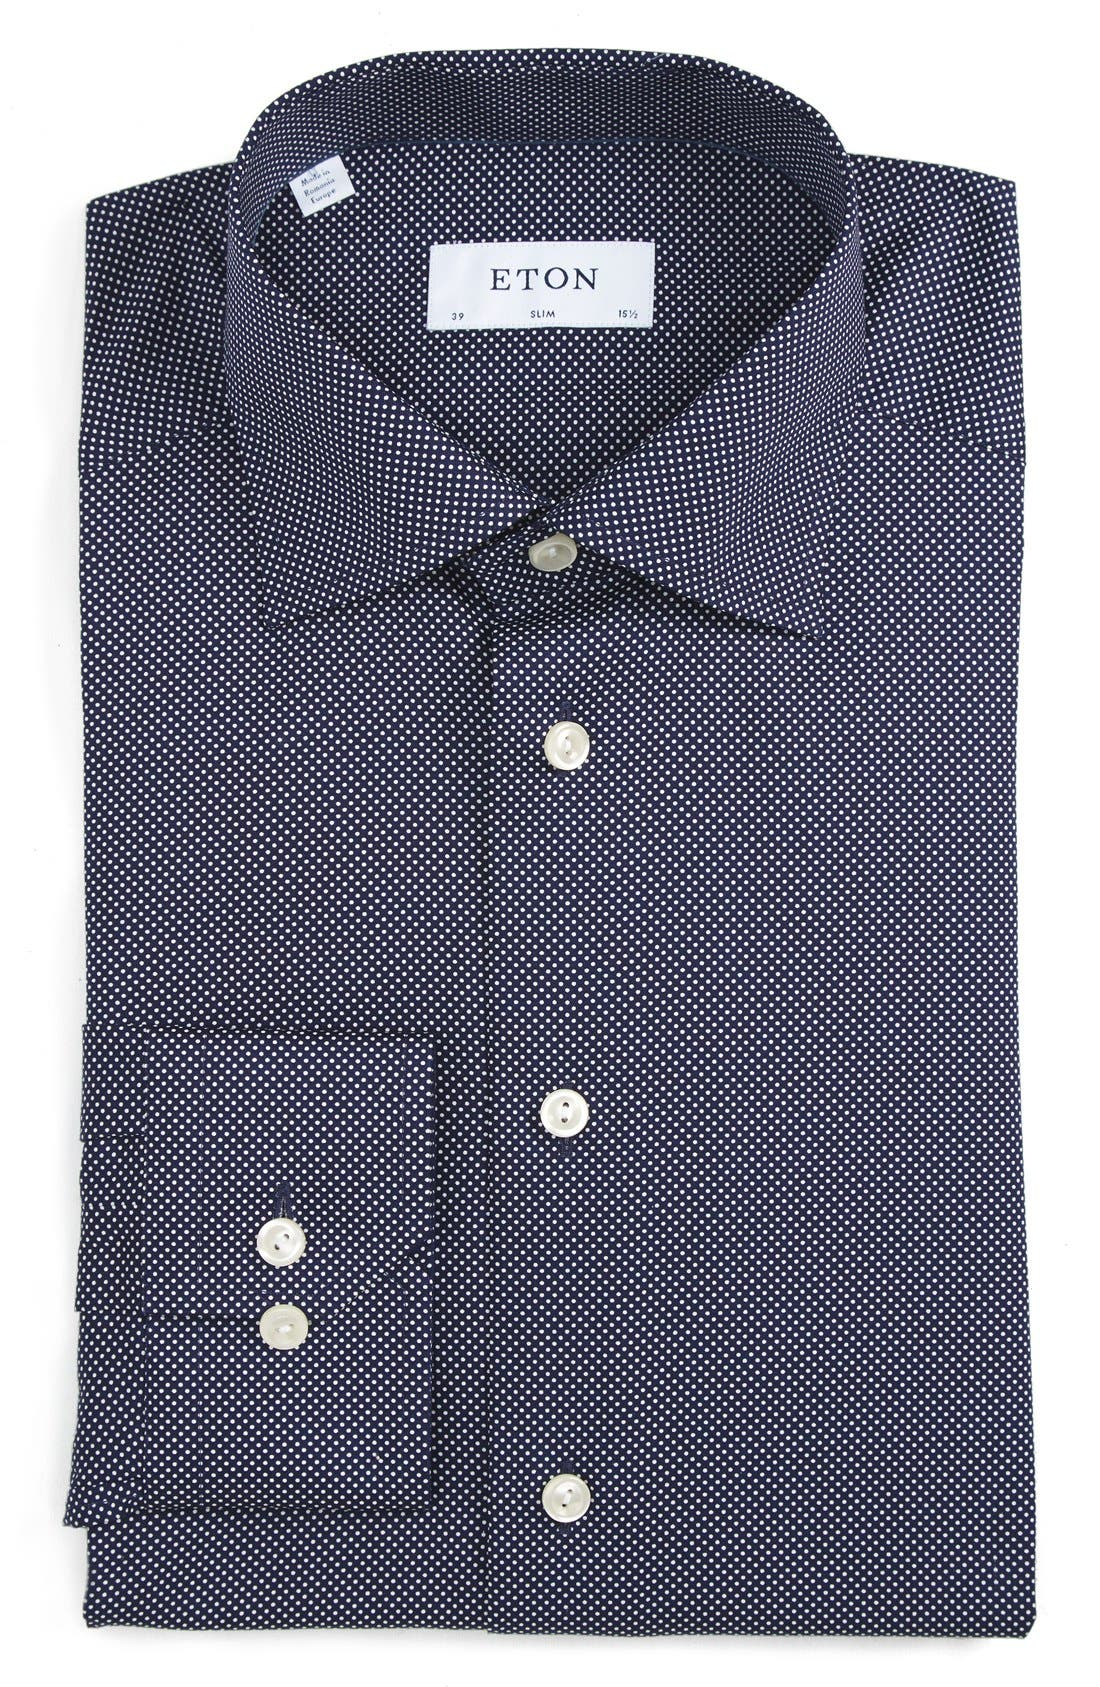 Eton Slim Fit Dot Dress Shirt